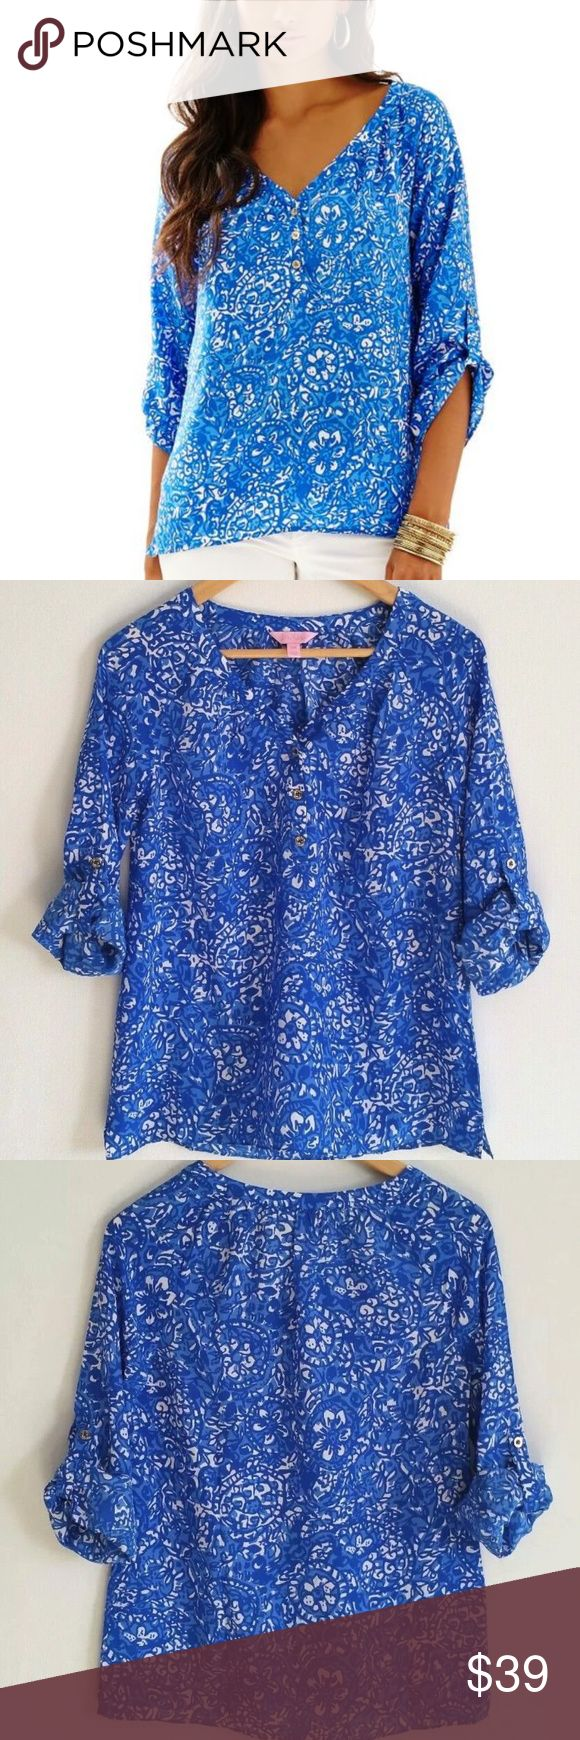 """Lilly Pulitzer Silk Tye Top Give Em Shell Shirt Lilly Pulitzer Women's Silk Tye Top Blue Give Em Shell Tab Sleeves  Women's Size:  XXS ( See Measurements, generous fit )  The Tye Top is a magnificent printed silk long sleeve shirt that you won't be able to get enough of. Gold Buttons at Front  V-Neckline Top With Sleeve Tab Detail.  (100% Silk). Dry Clean Only. Imported.  Measures Approx 25"""" Length From Shoulder to Front Hem  Measures Approx 17-17.5"""" Underarm to Underarm  Smoke & Pet Free…"""